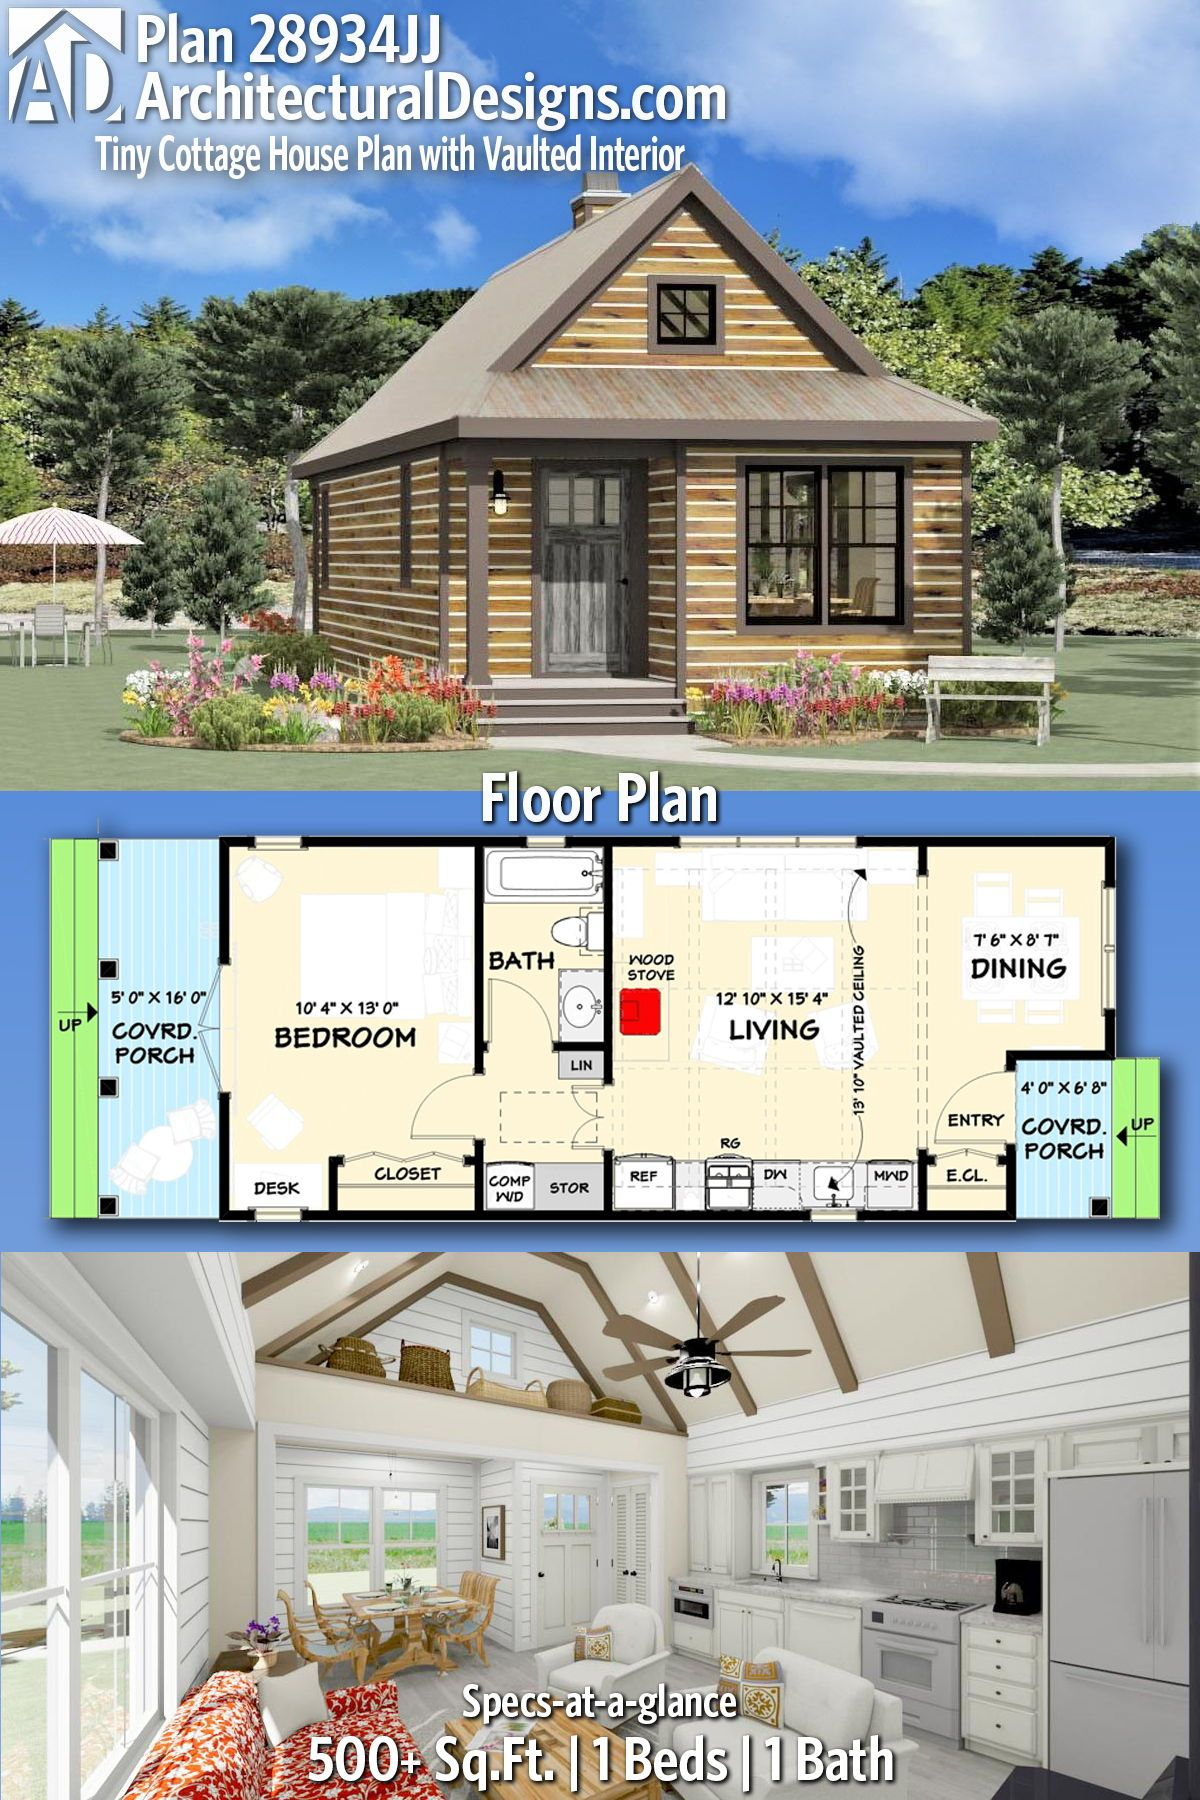 Plan 28934JJ: Tiny Cottage House Plan with Vaulted Interior